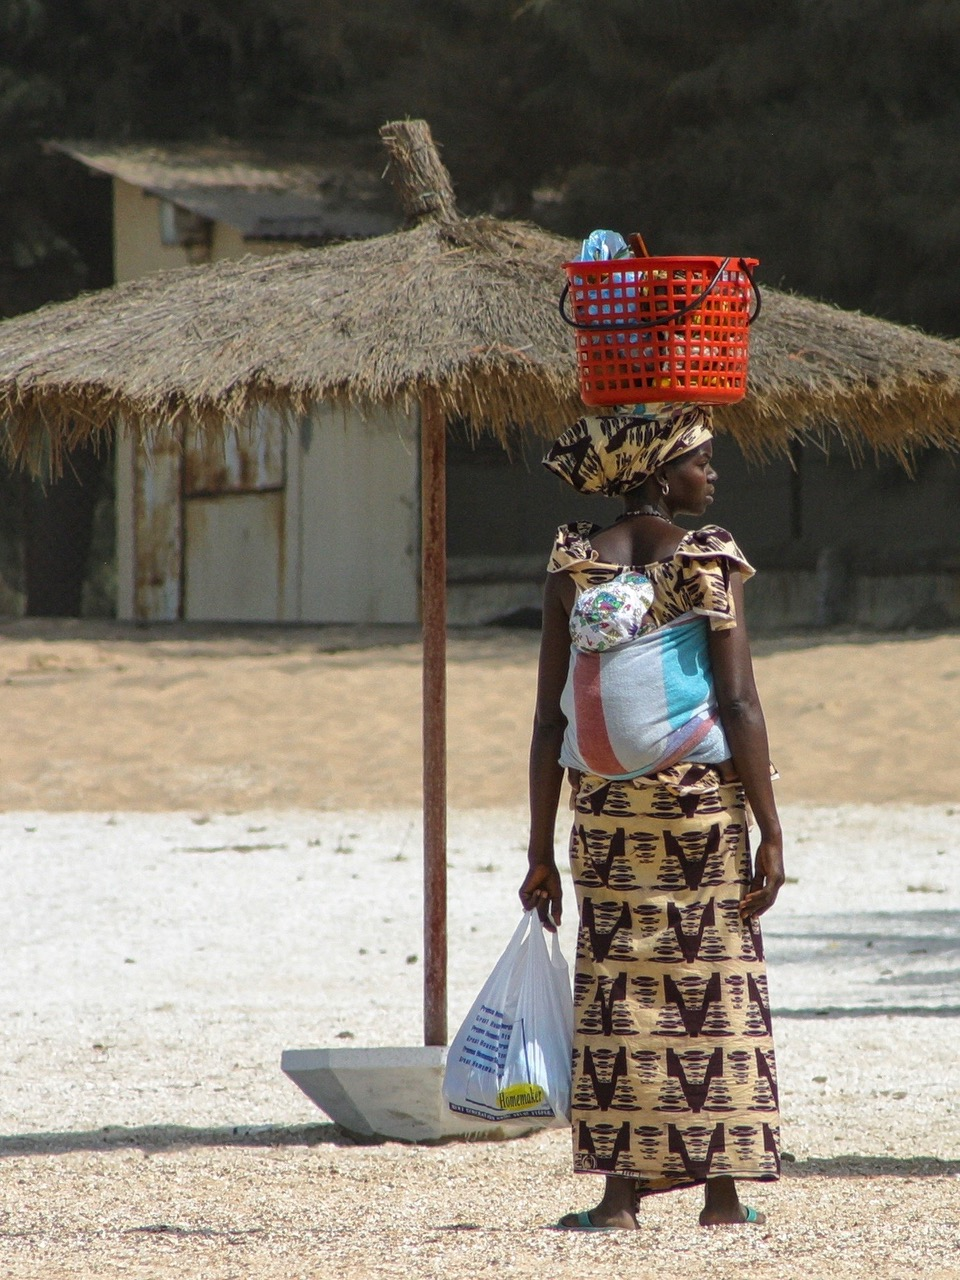 Woman carries baby and stuff in traditional way in Gambia